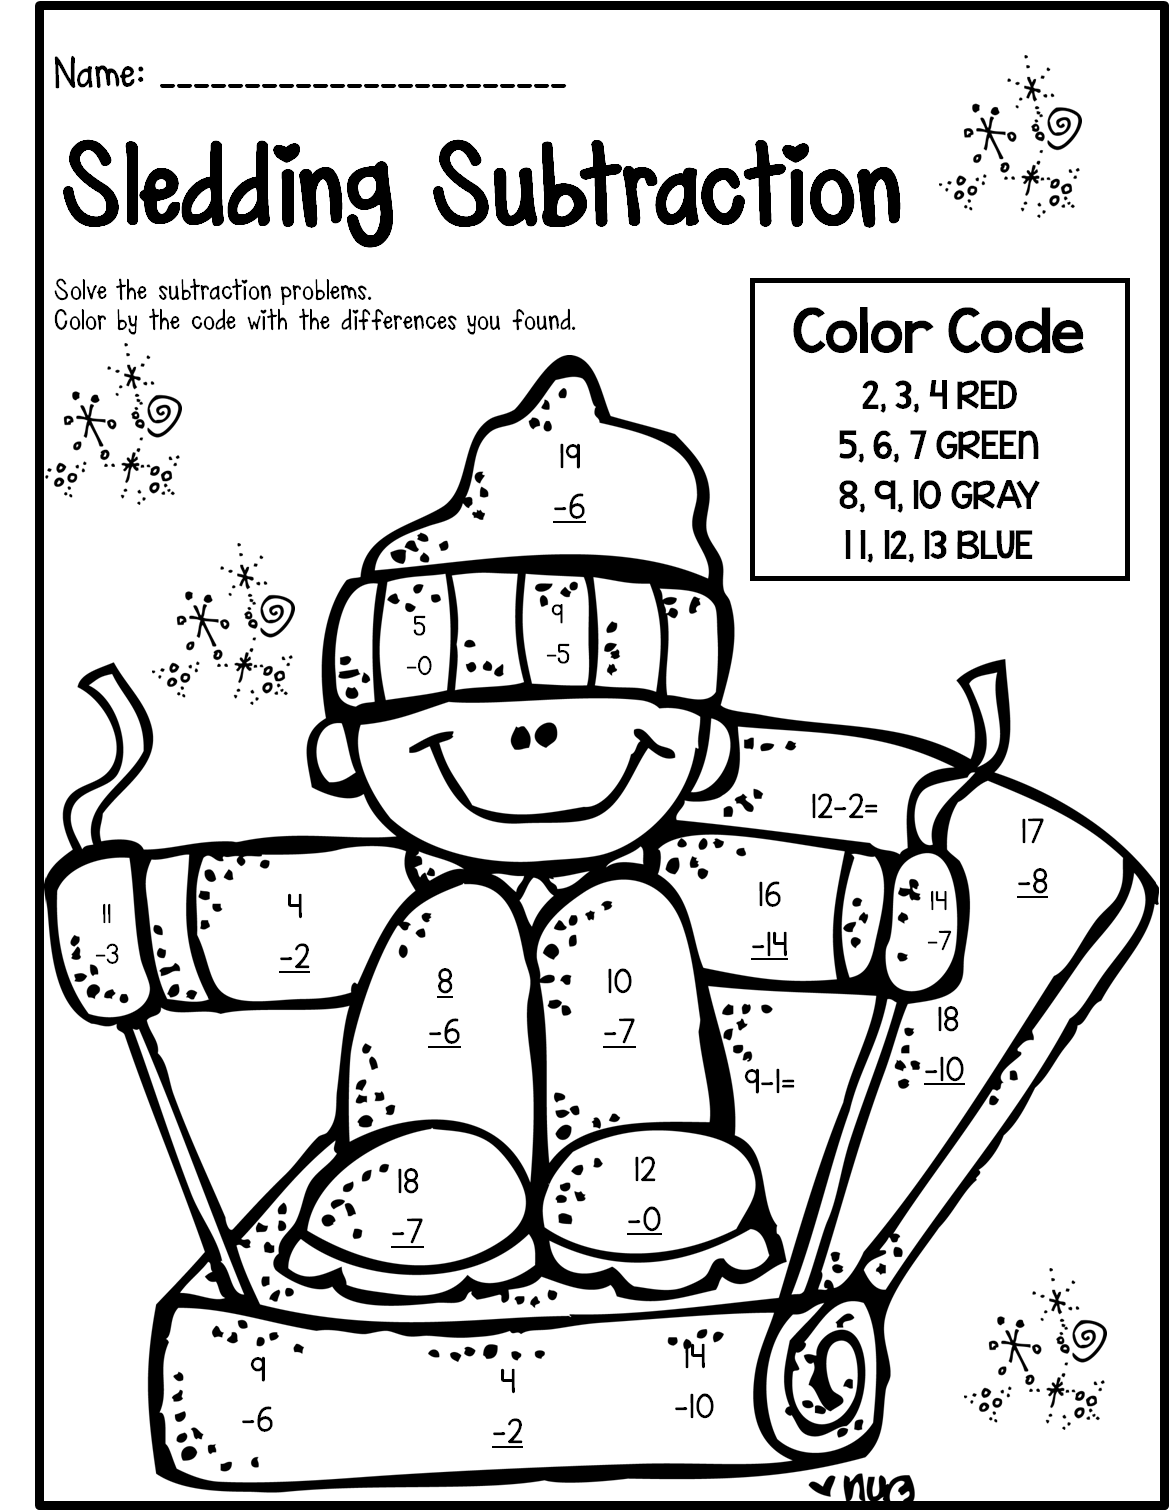 Math color worksheets for 1st grade - Mathematics Pin Second Grade Fu For Holiday Time And Good For Leatnign Math Winter